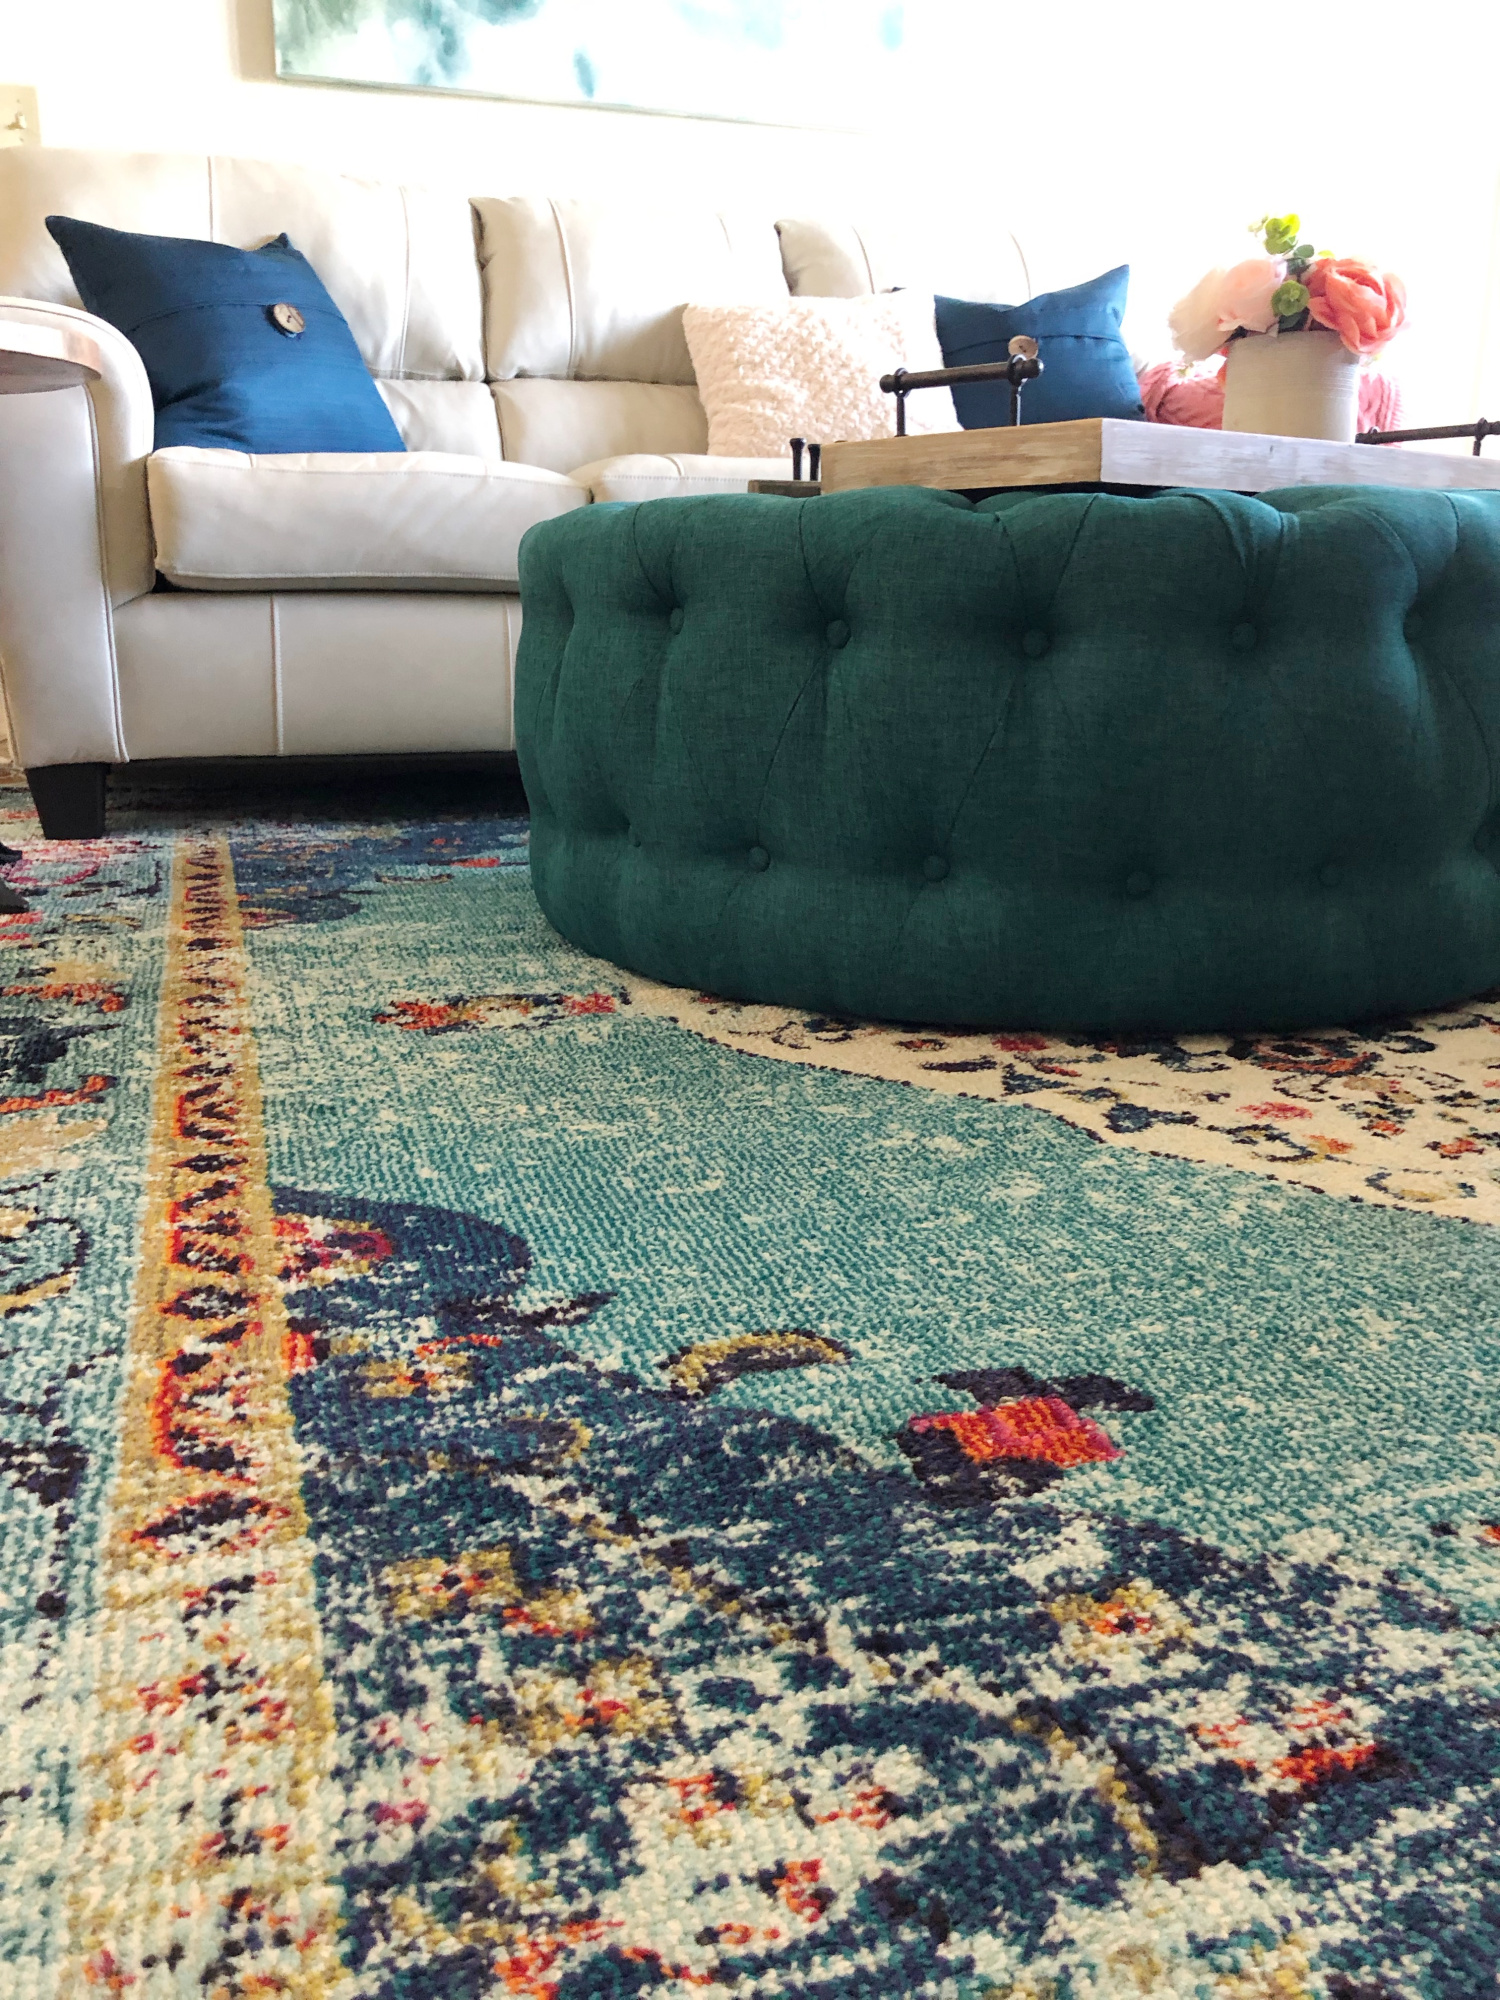 Rug and ottoman for teal accents at the lake - TEAL LIVING ROOM DECOR - LAKE CONDO or Beach